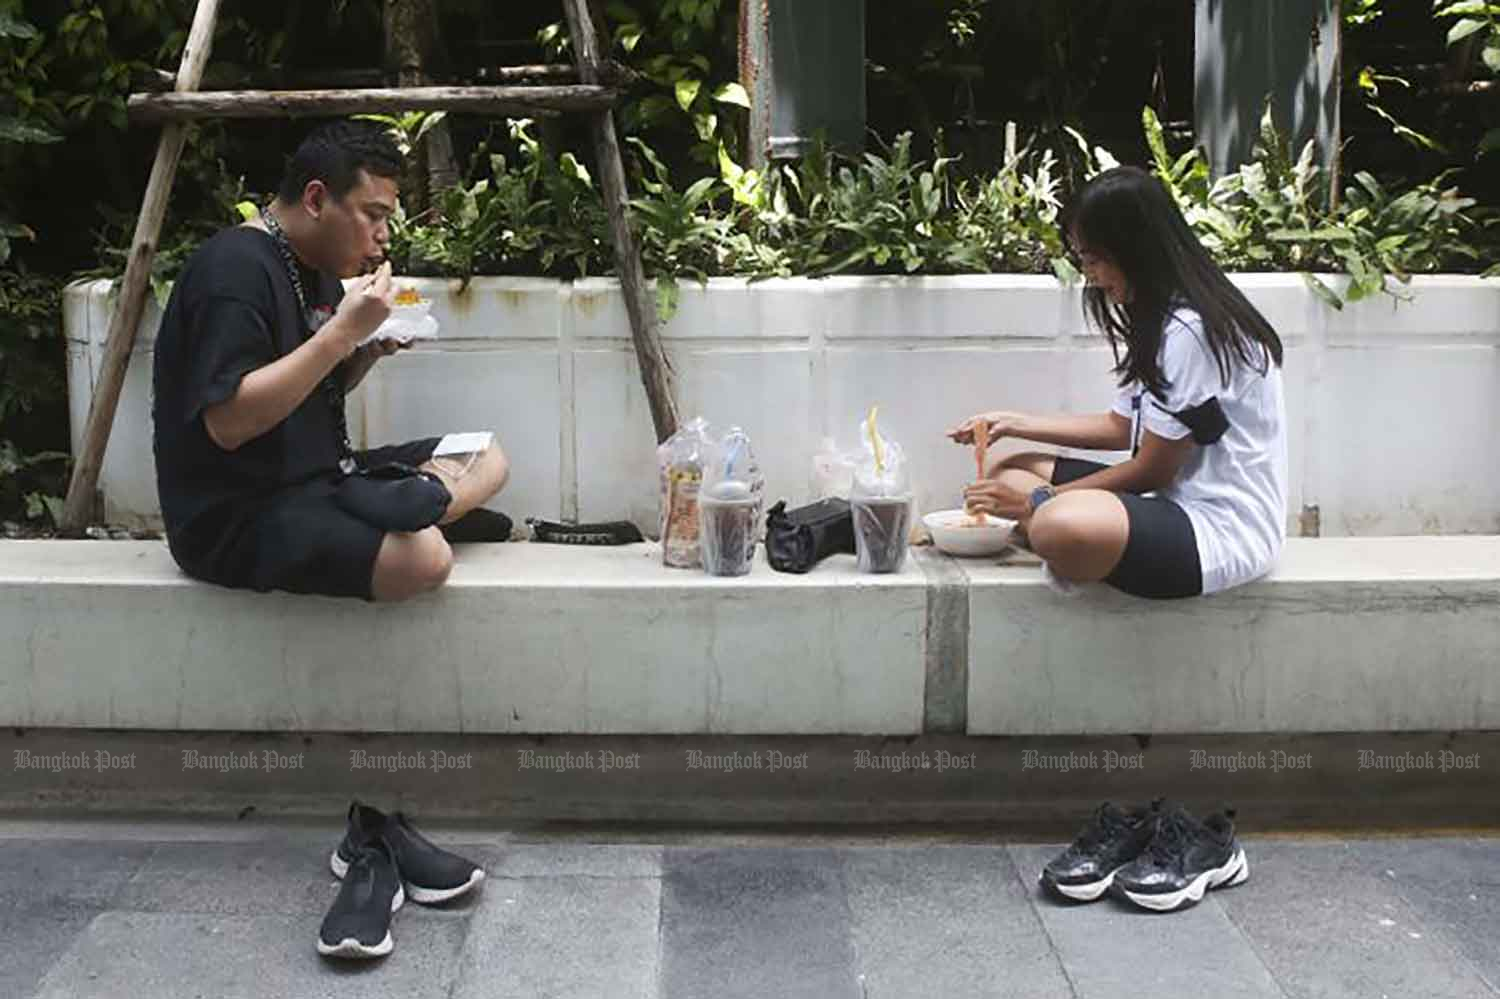 People enjoy meals in a rest area outside CentralPlaza Lardprao shopping complex in Bangkok on Wednesday after measures banning dine-in services at restaurants and eateries were launched to contain the pandemic. (Photo: Pattarapong Chatpattarasill)